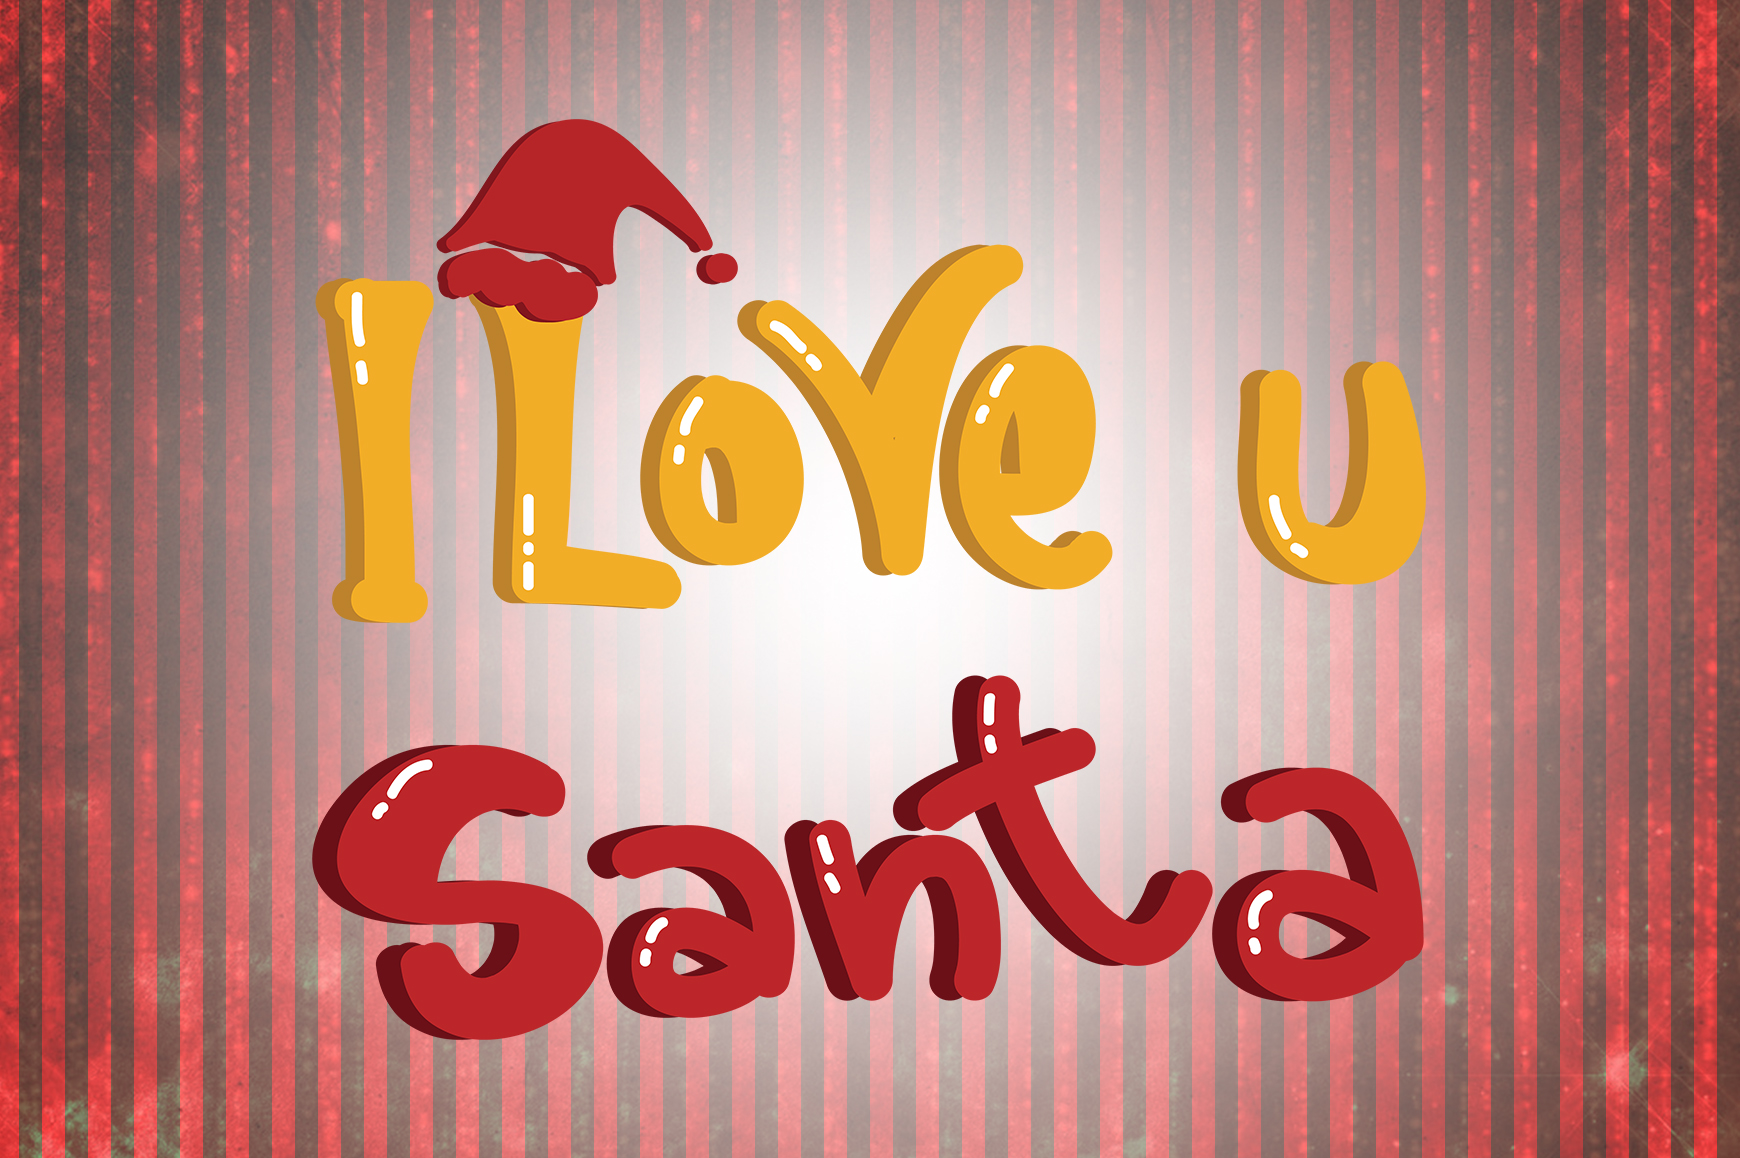 Download Free I Love You Santa Christmas Quotes Graphic By Wienscollection for Cricut Explore, Silhouette and other cutting machines.